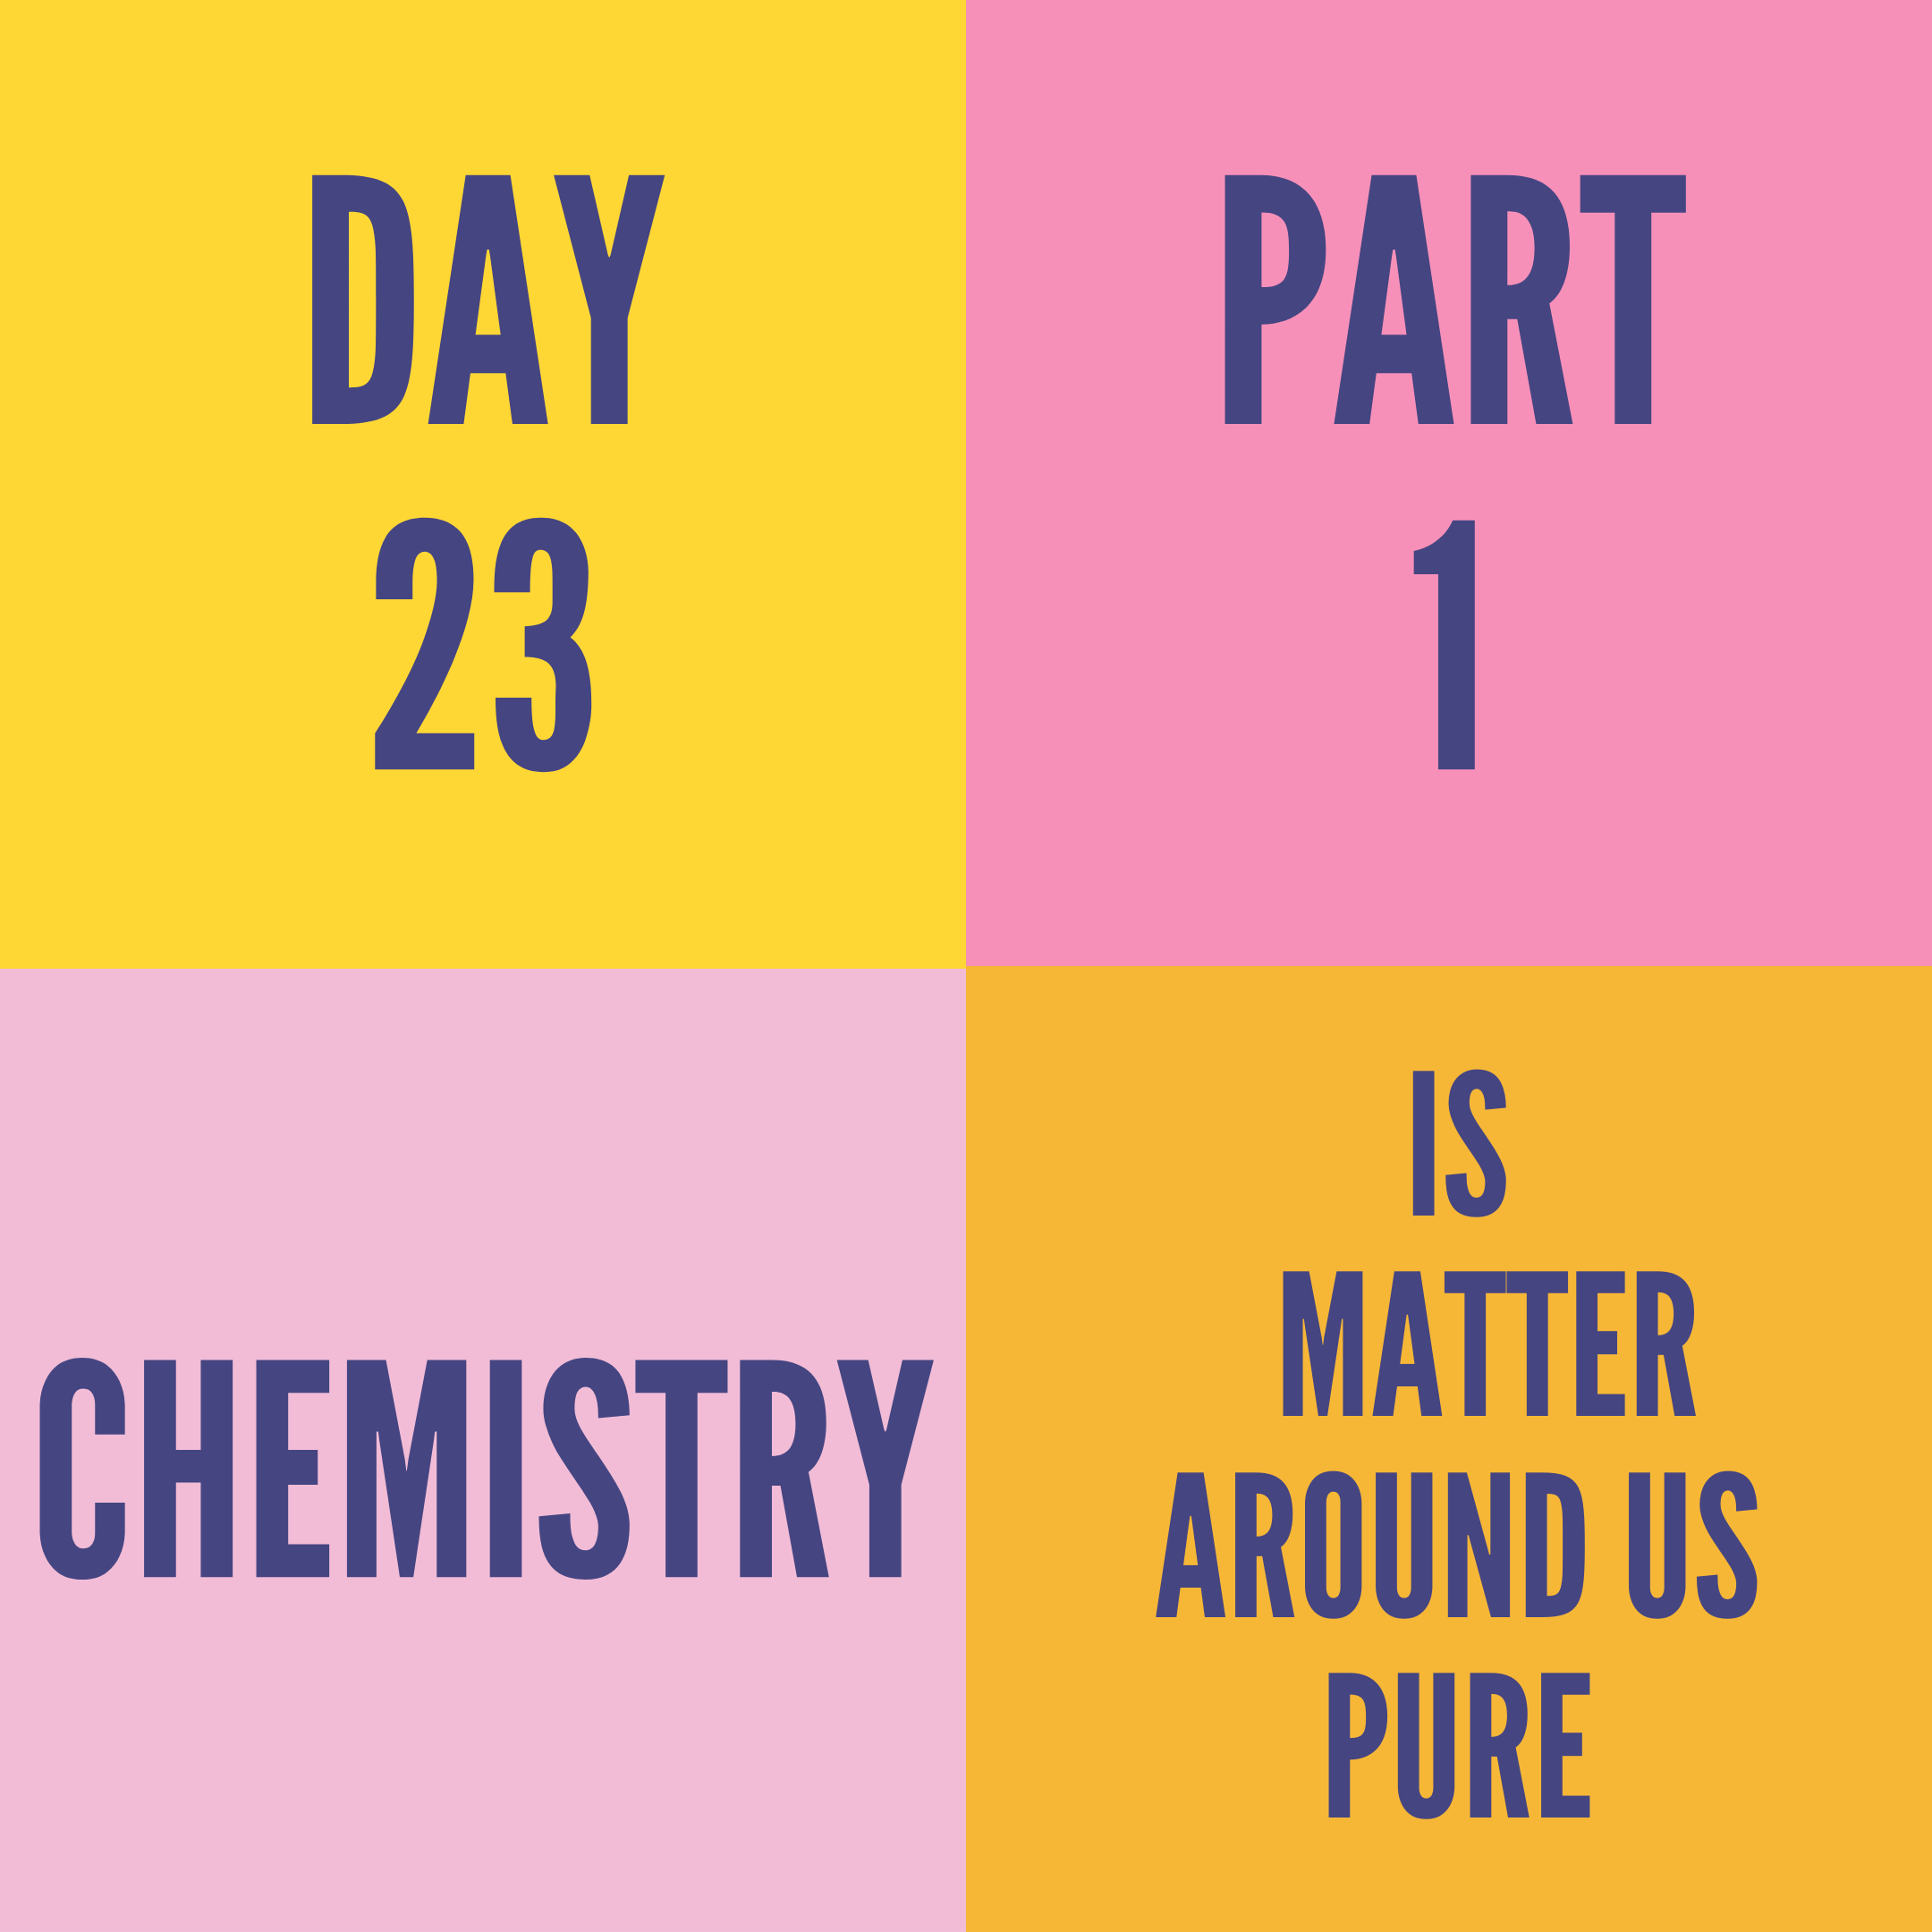 DAY-23 PART-1 IS MATTER AROUND US PURE